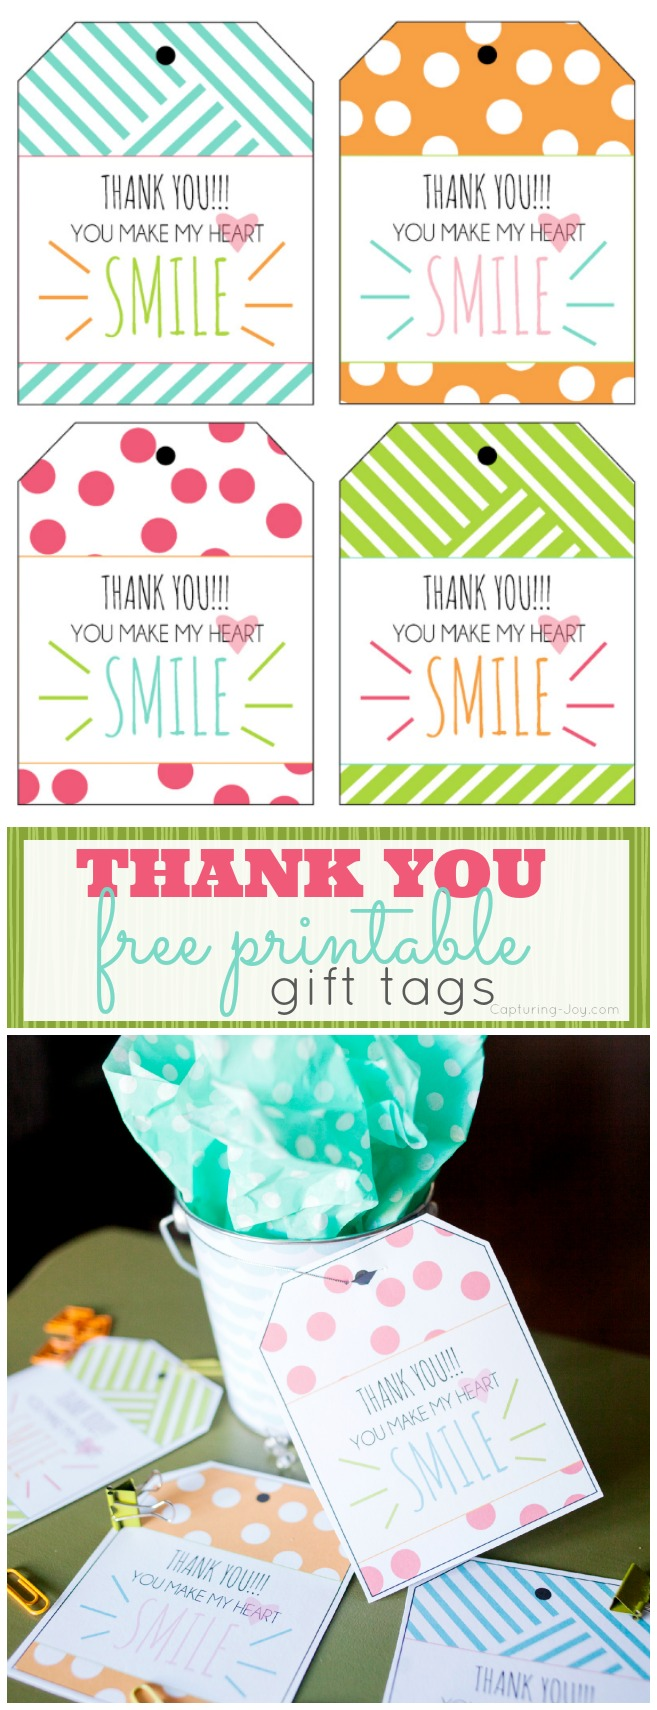 Thank-You-Free-Printable-Gift-Tags